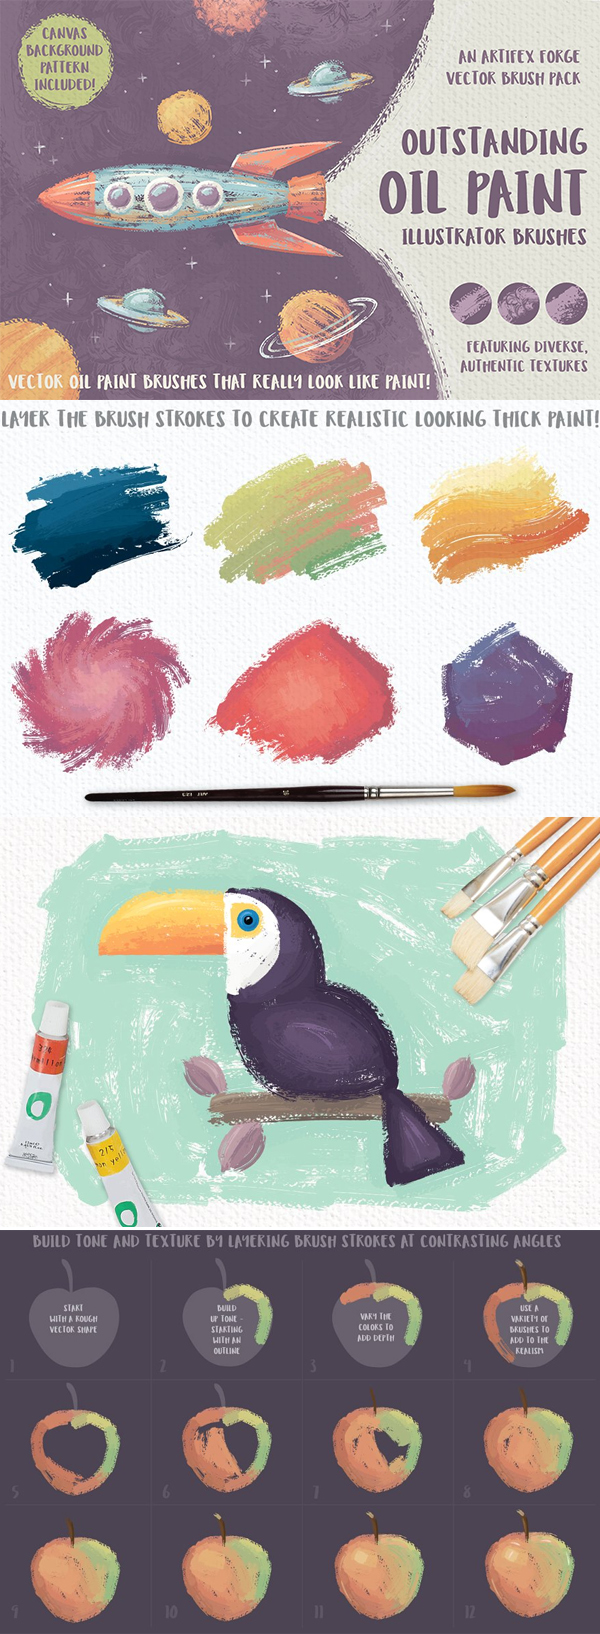 Outstanding Oil Paint Brushes